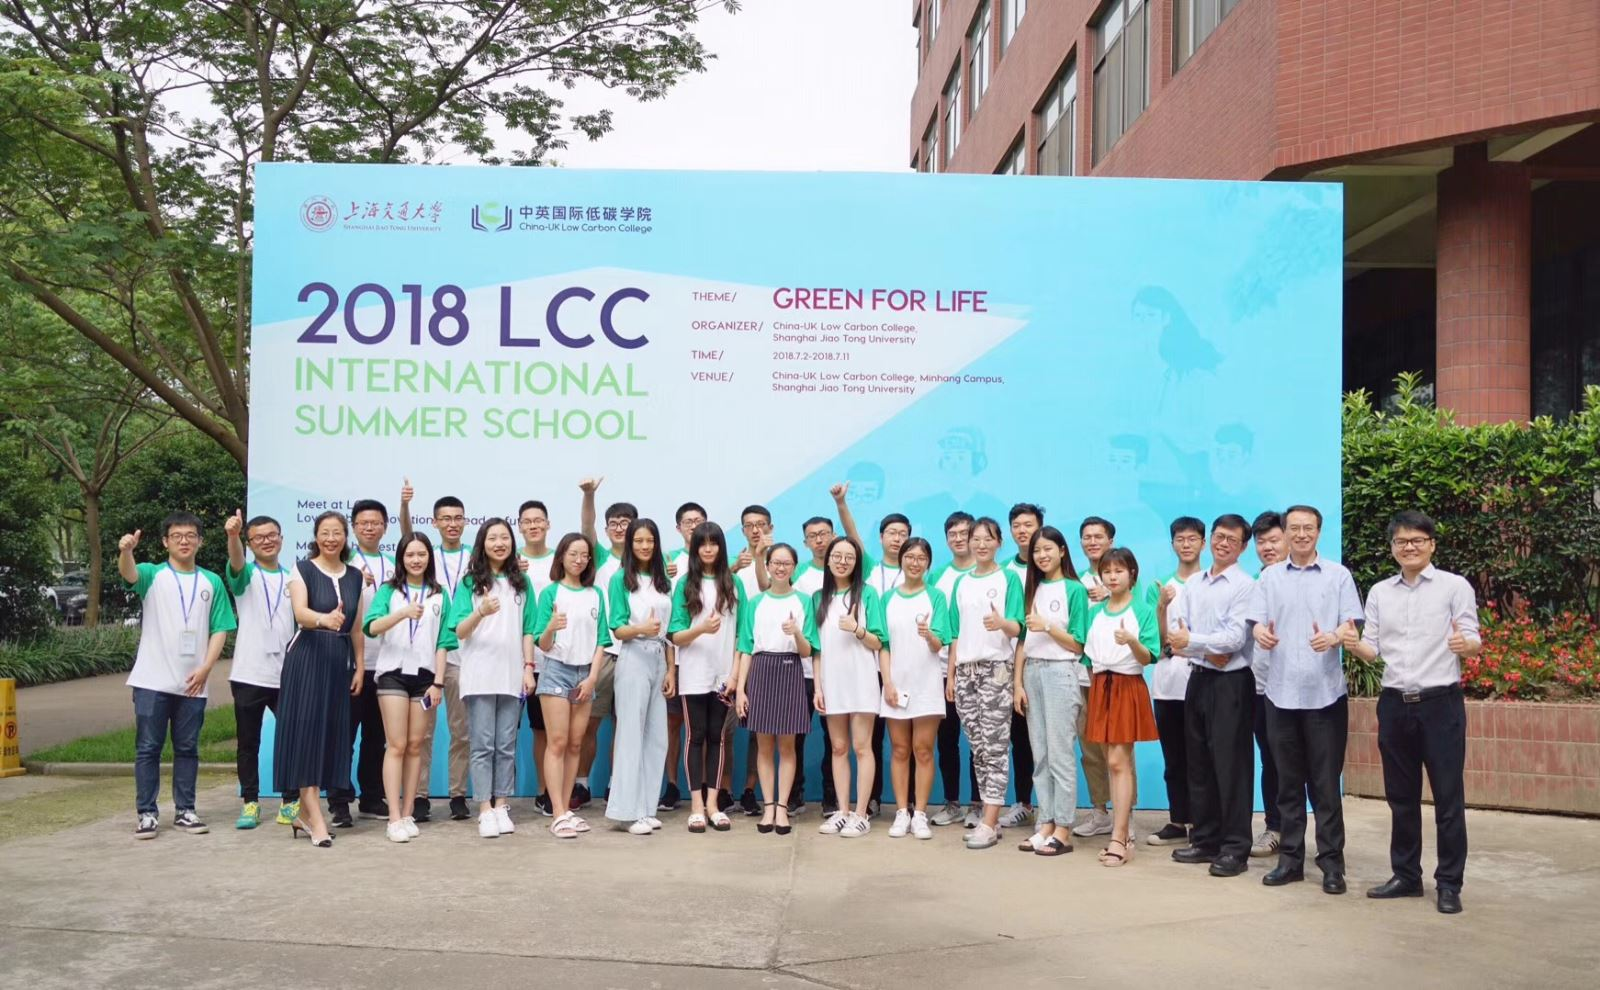 Lcc Held The Green For Life 2018 International Summer School Opening Ceremony